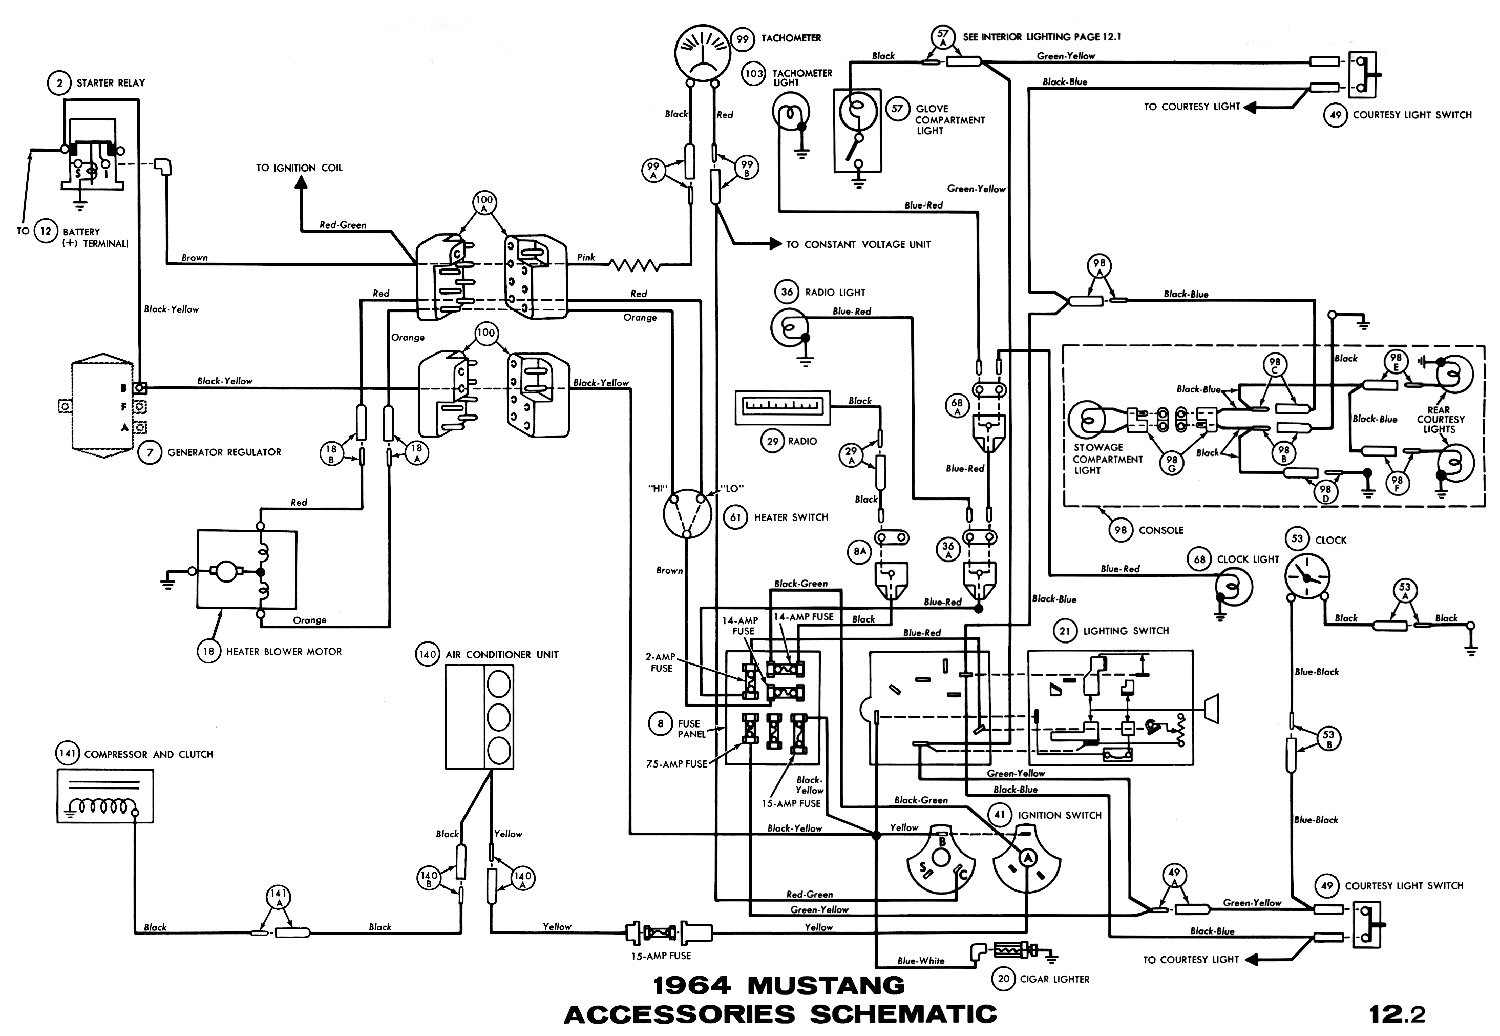 1965 mustang ignition switch wiring diagram Collection-1966 Mustang Ignition Switch Wiring Diagram Unique 1966 ford Mustang Wiring Diagram A Beautiful Blurts 12-p